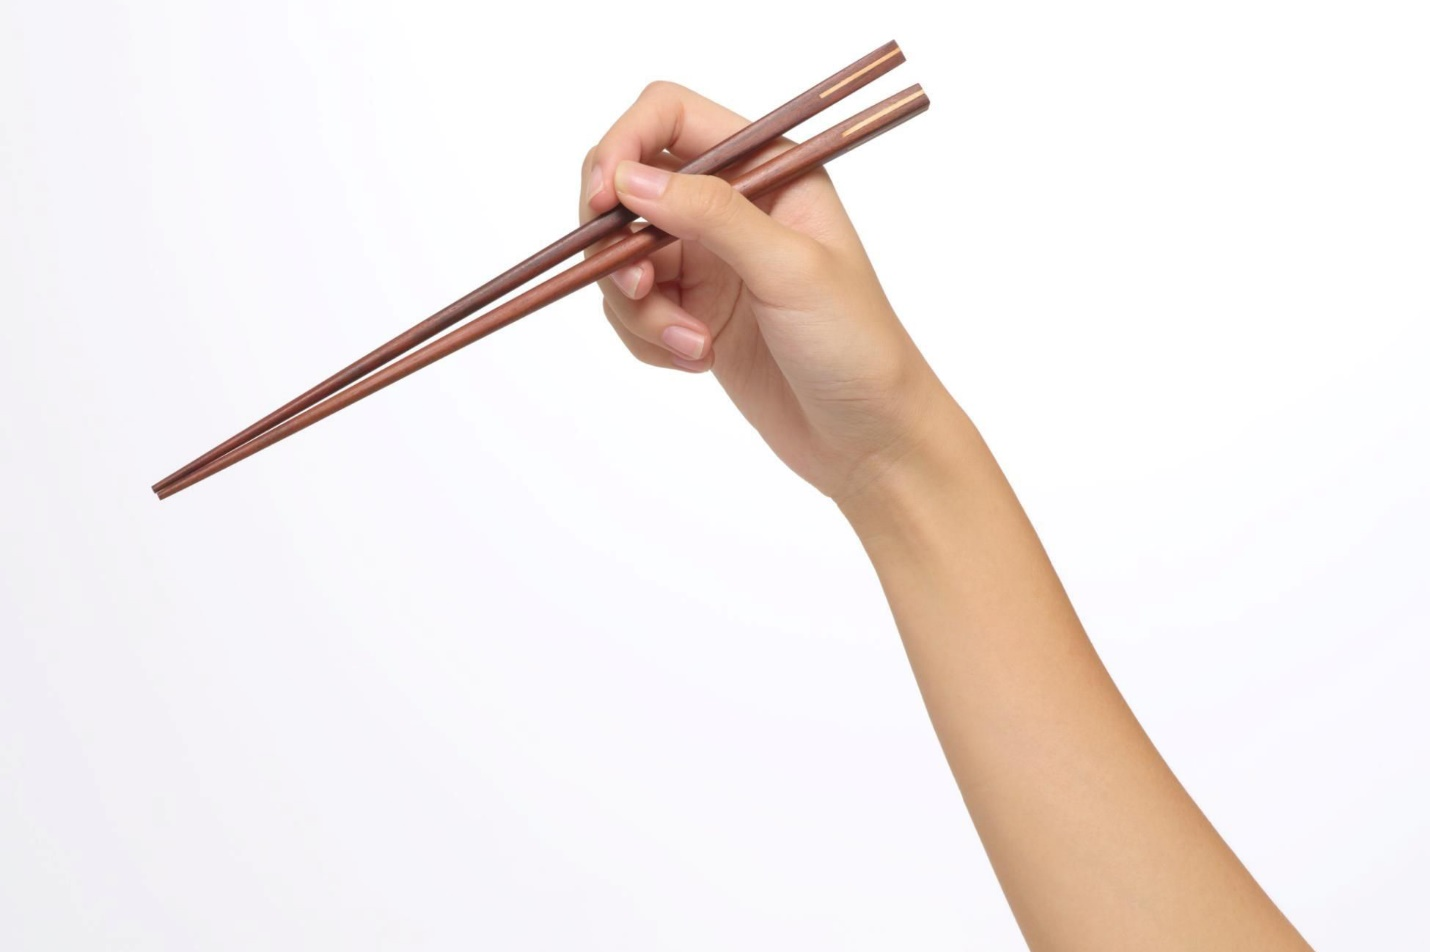 imagery in three uses of chopsticks by juliet kono Start studying internment by juliet s kono learn vocabulary, terms, and more with flashcards, games, and other study tools.